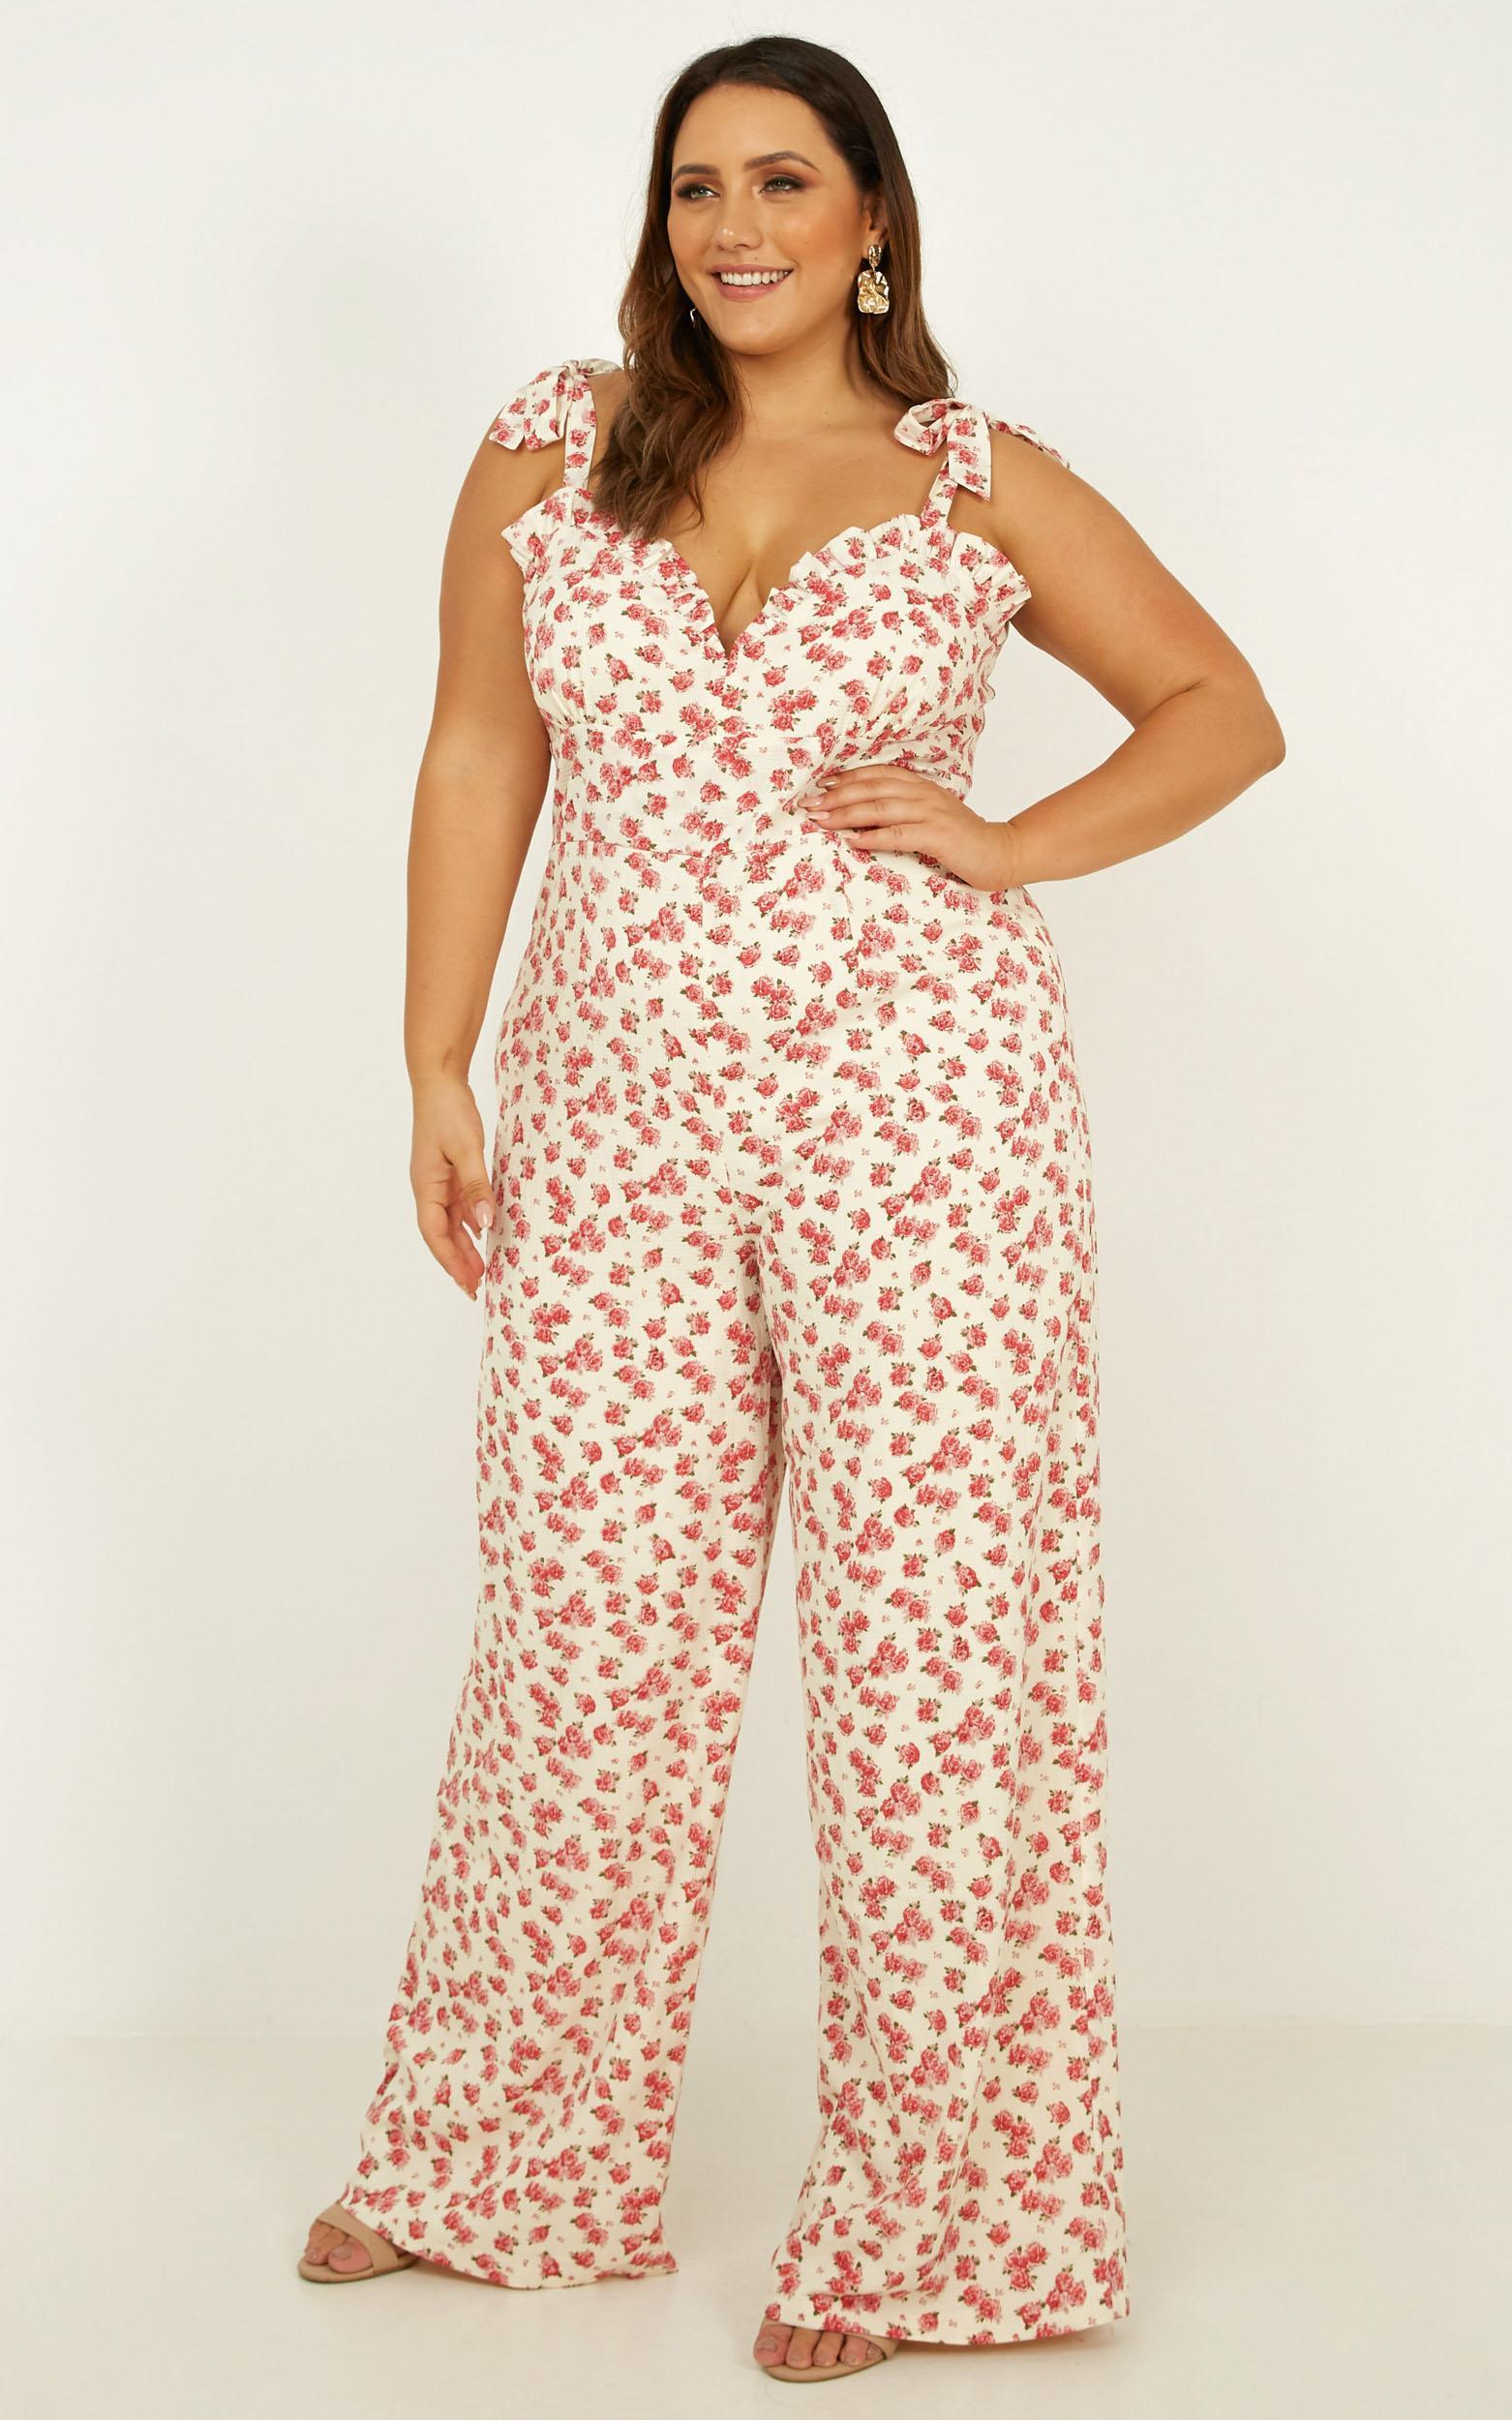 Days Drifting Jumpsuit In white floral - 20 (XXXXL), White, hi-res image number null